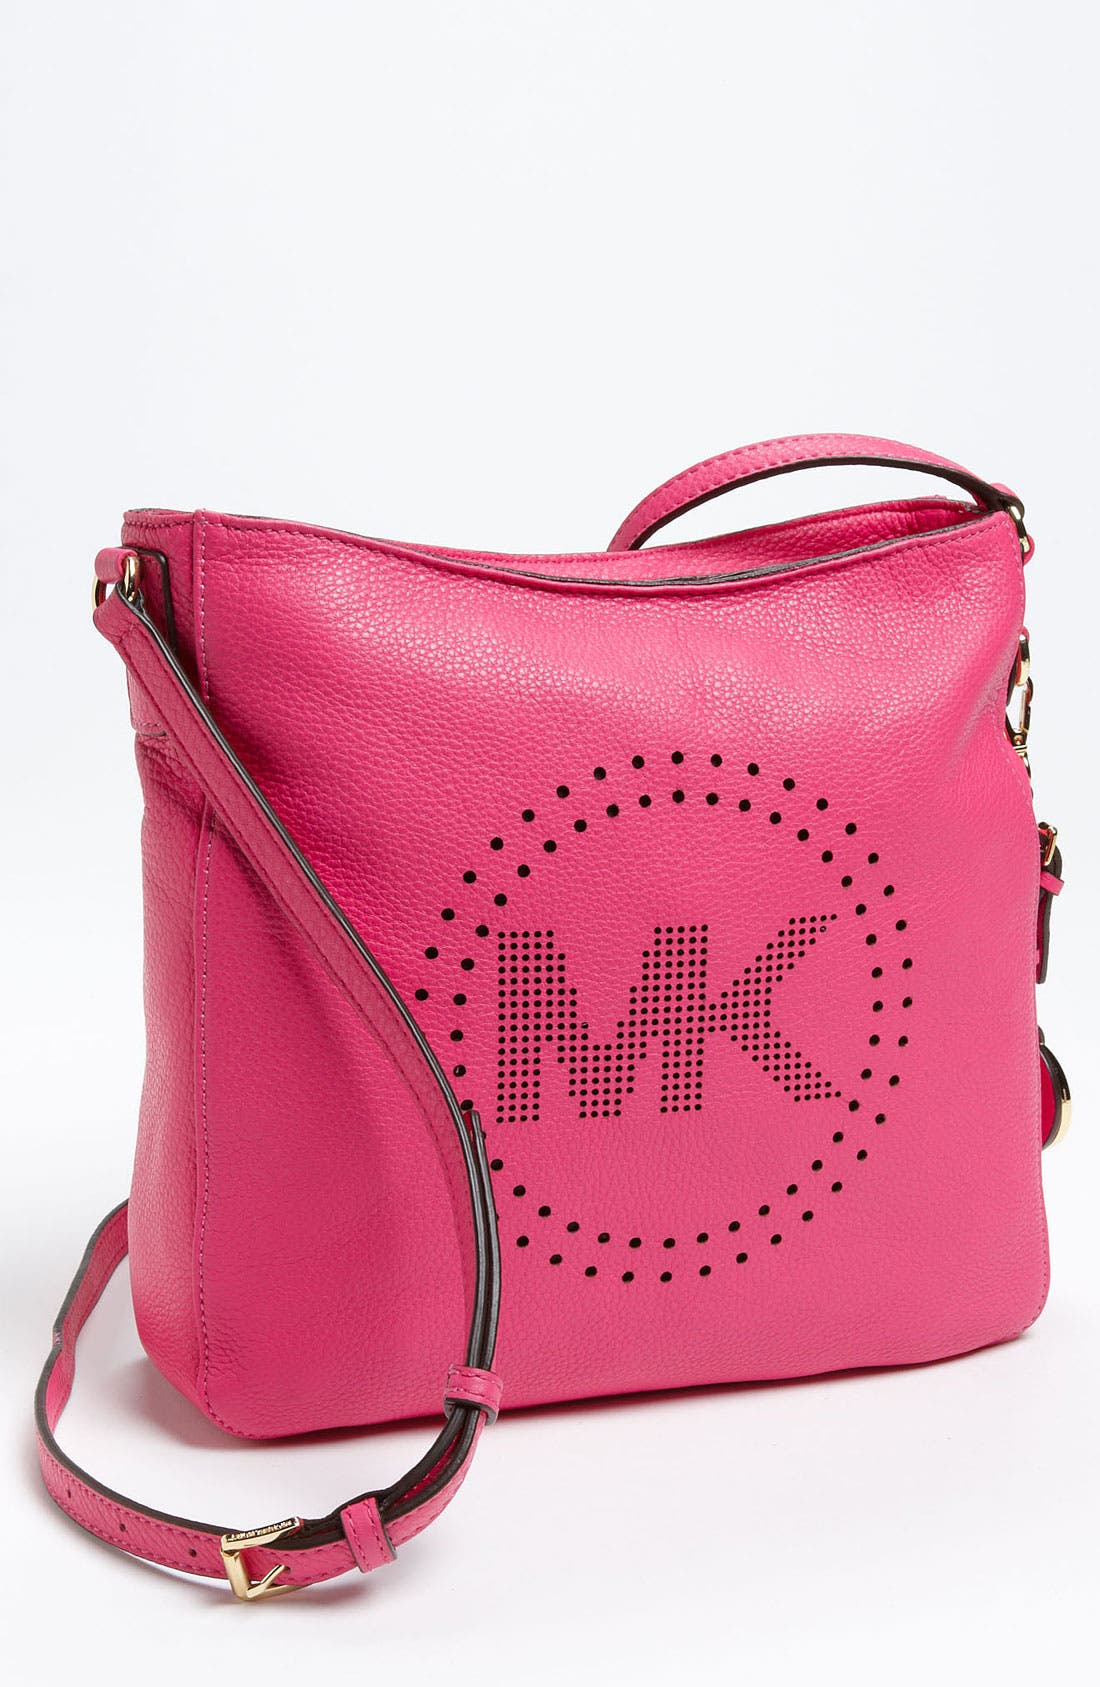 Alternate Image 1 Selected - MICHAEL Michael Kors 'Perforated MK - Large' Leather Messenger Bag